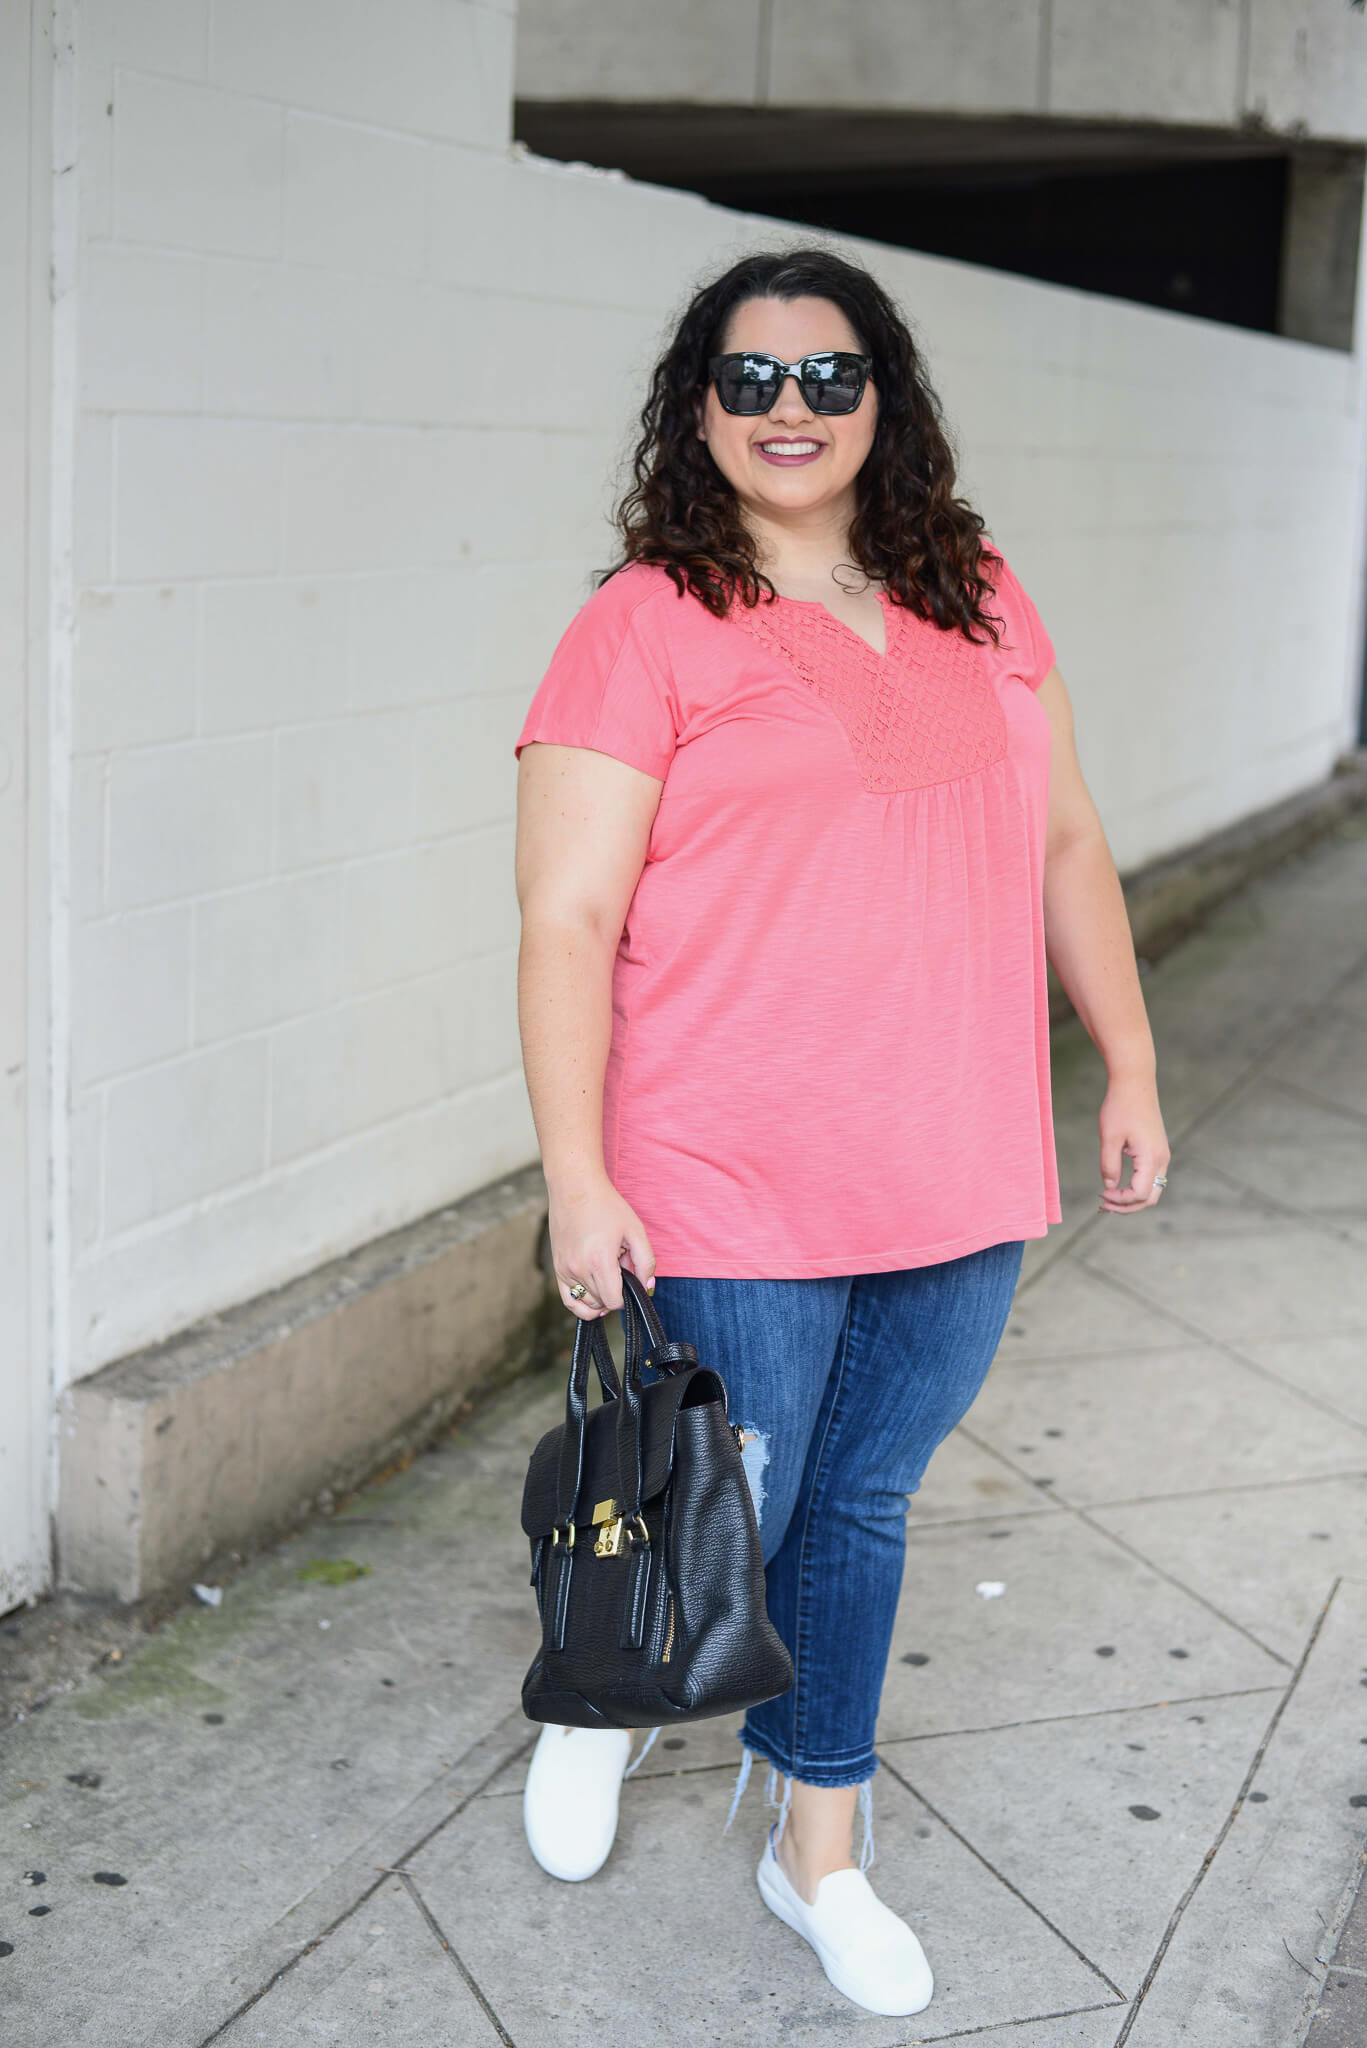 A bright cotton top from the Modern Curvy brand, Just My Size, if just what I need for the warm summers